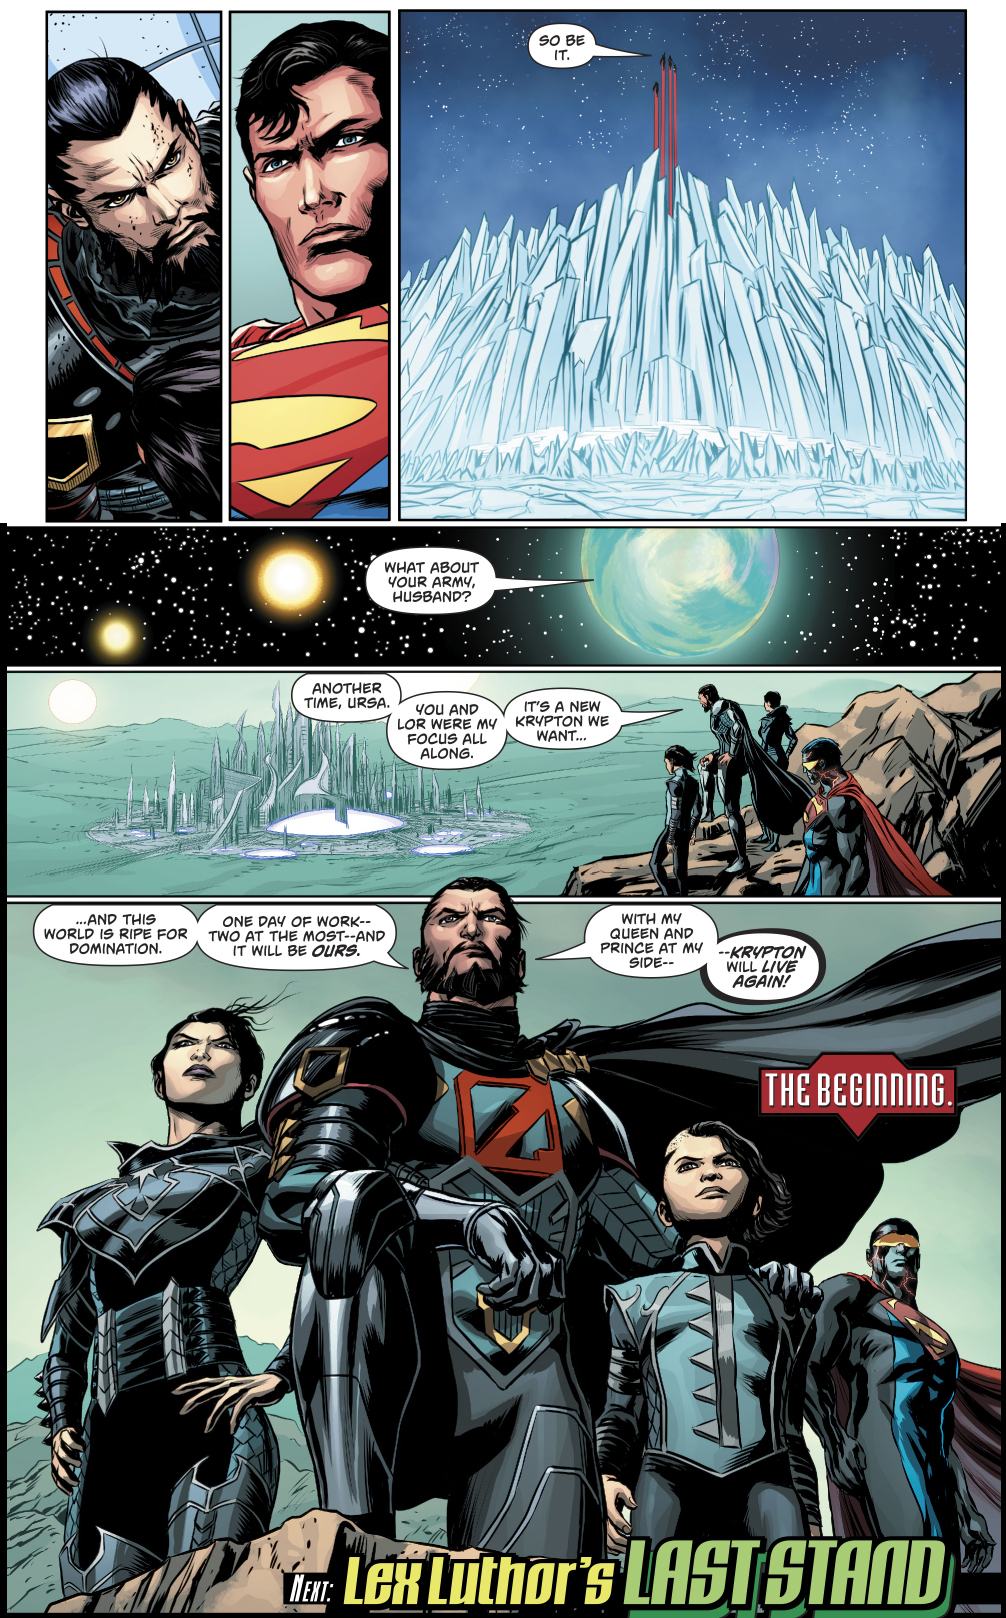 General Zod's Family Escapes The Phantom Zone